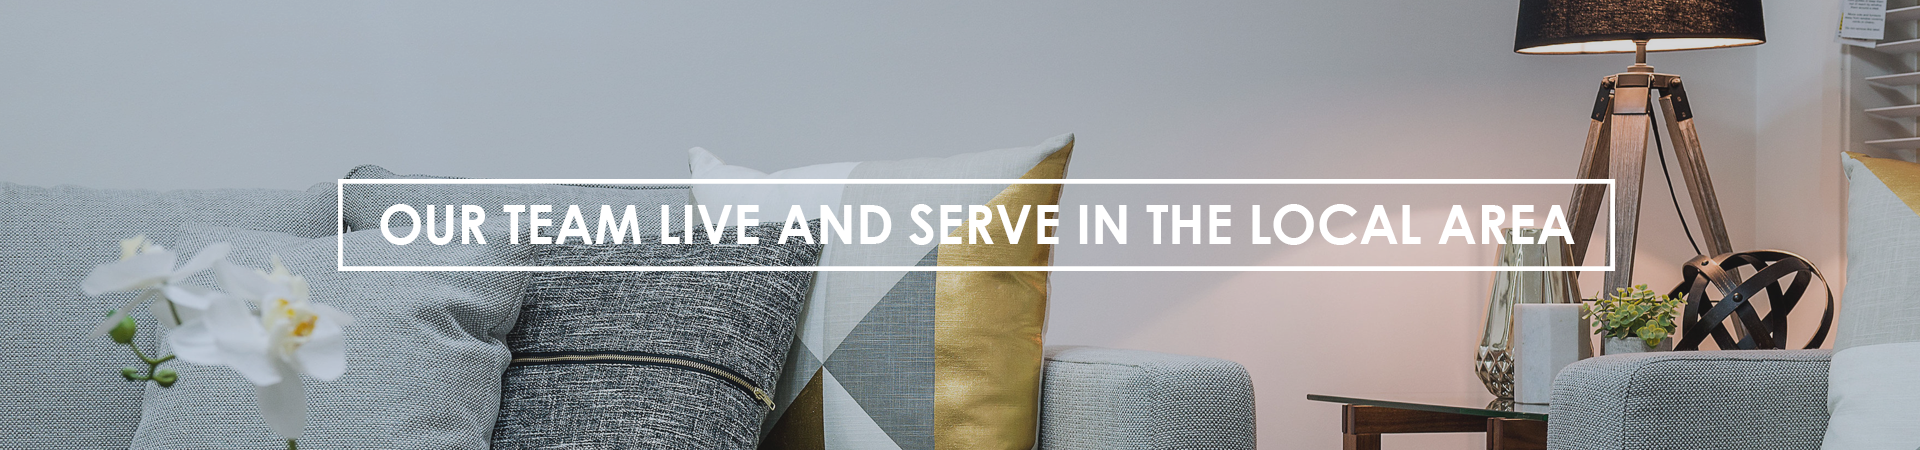 Live and serve banner